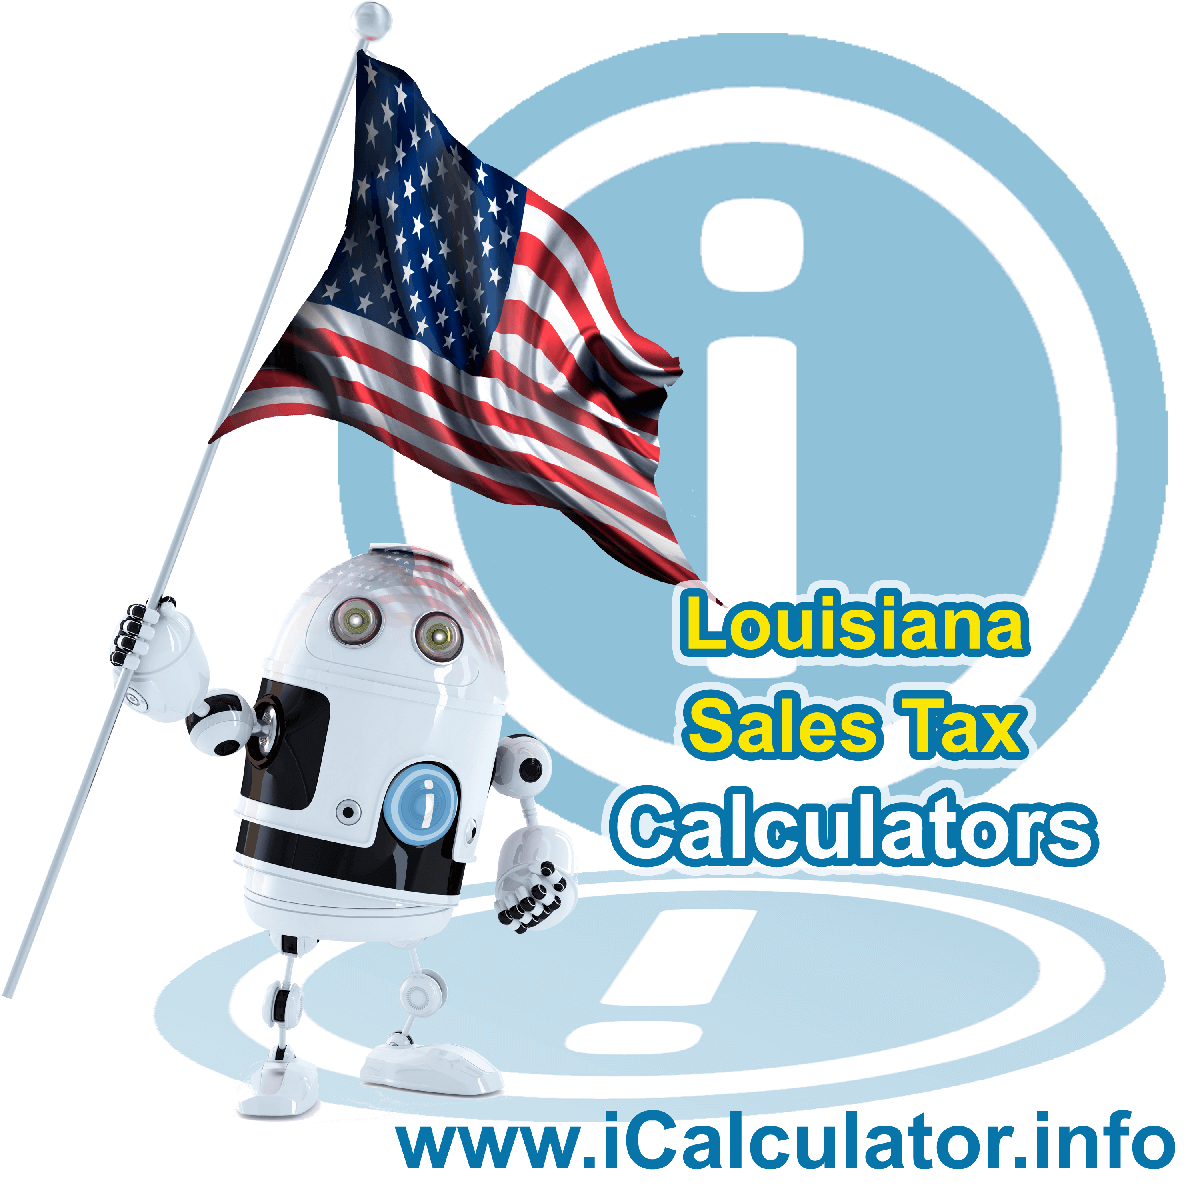 Estherwood Sales Rates: This image illustrates a calculator robot calculating Estherwood sales tax manually using the Estherwood Sales Tax Formula. You can use this information to calculate Estherwood Sales Tax manually or use the Estherwood Sales Tax Calculator to calculate sales tax online.